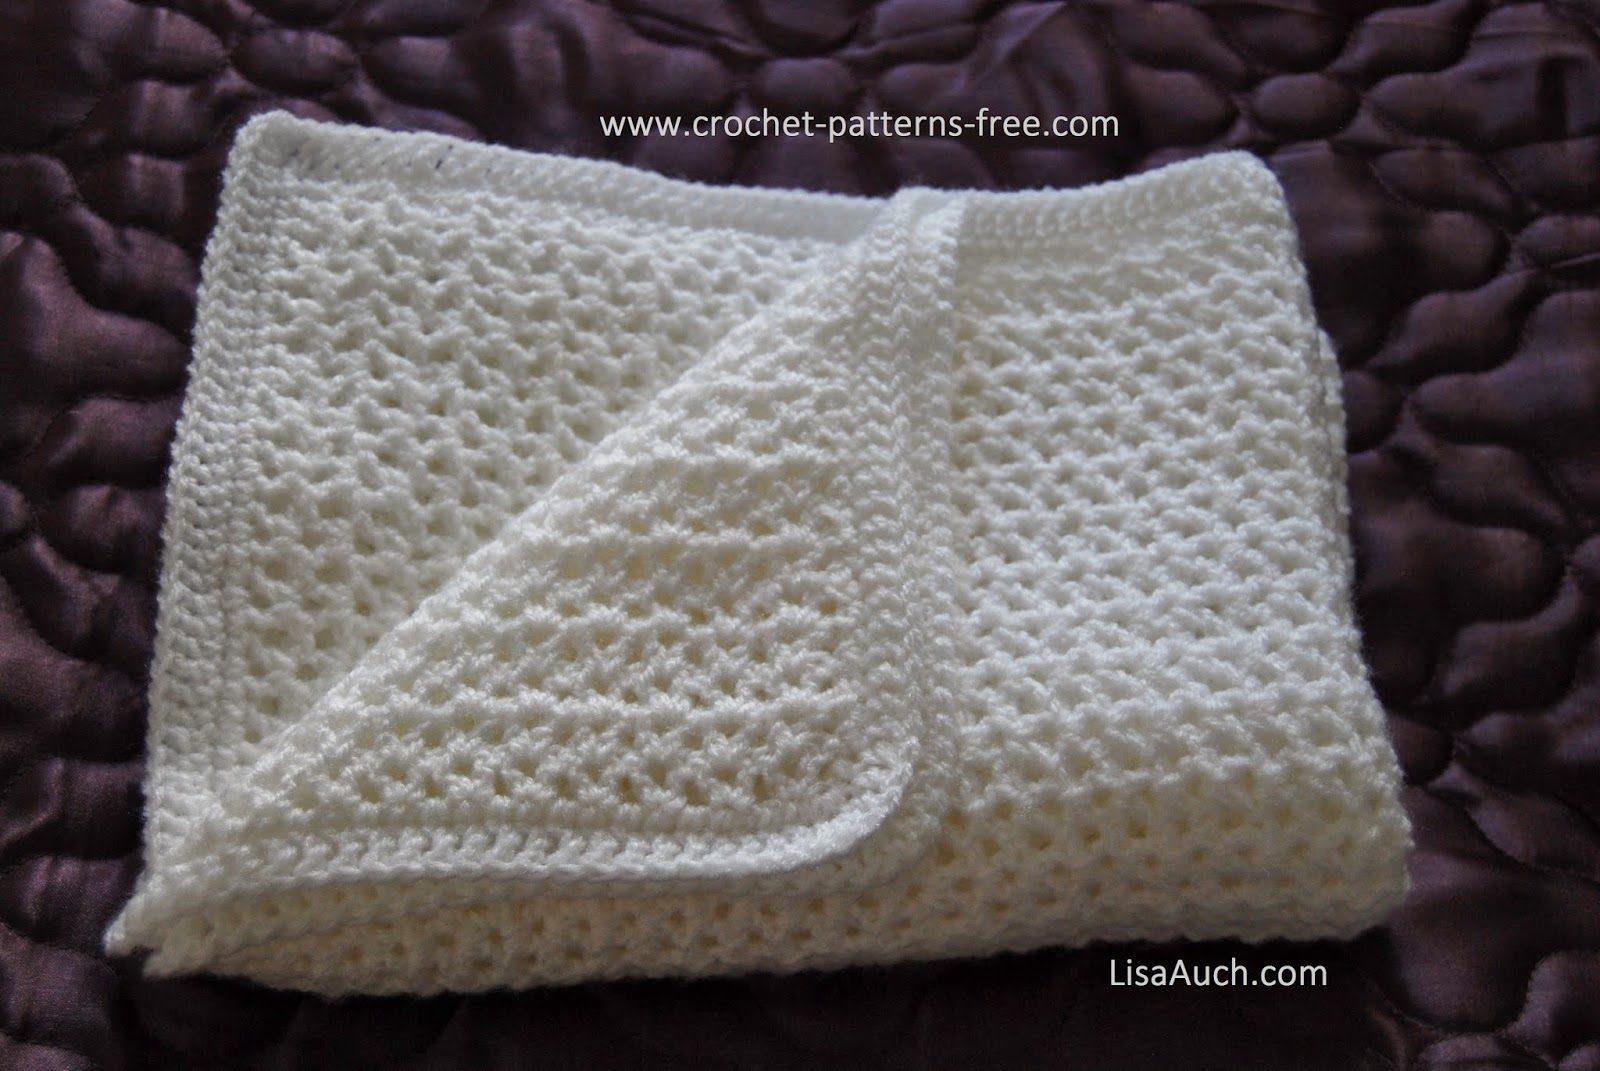 How To Crochet An Easy Baby Blanket Ideal For Beginners Free